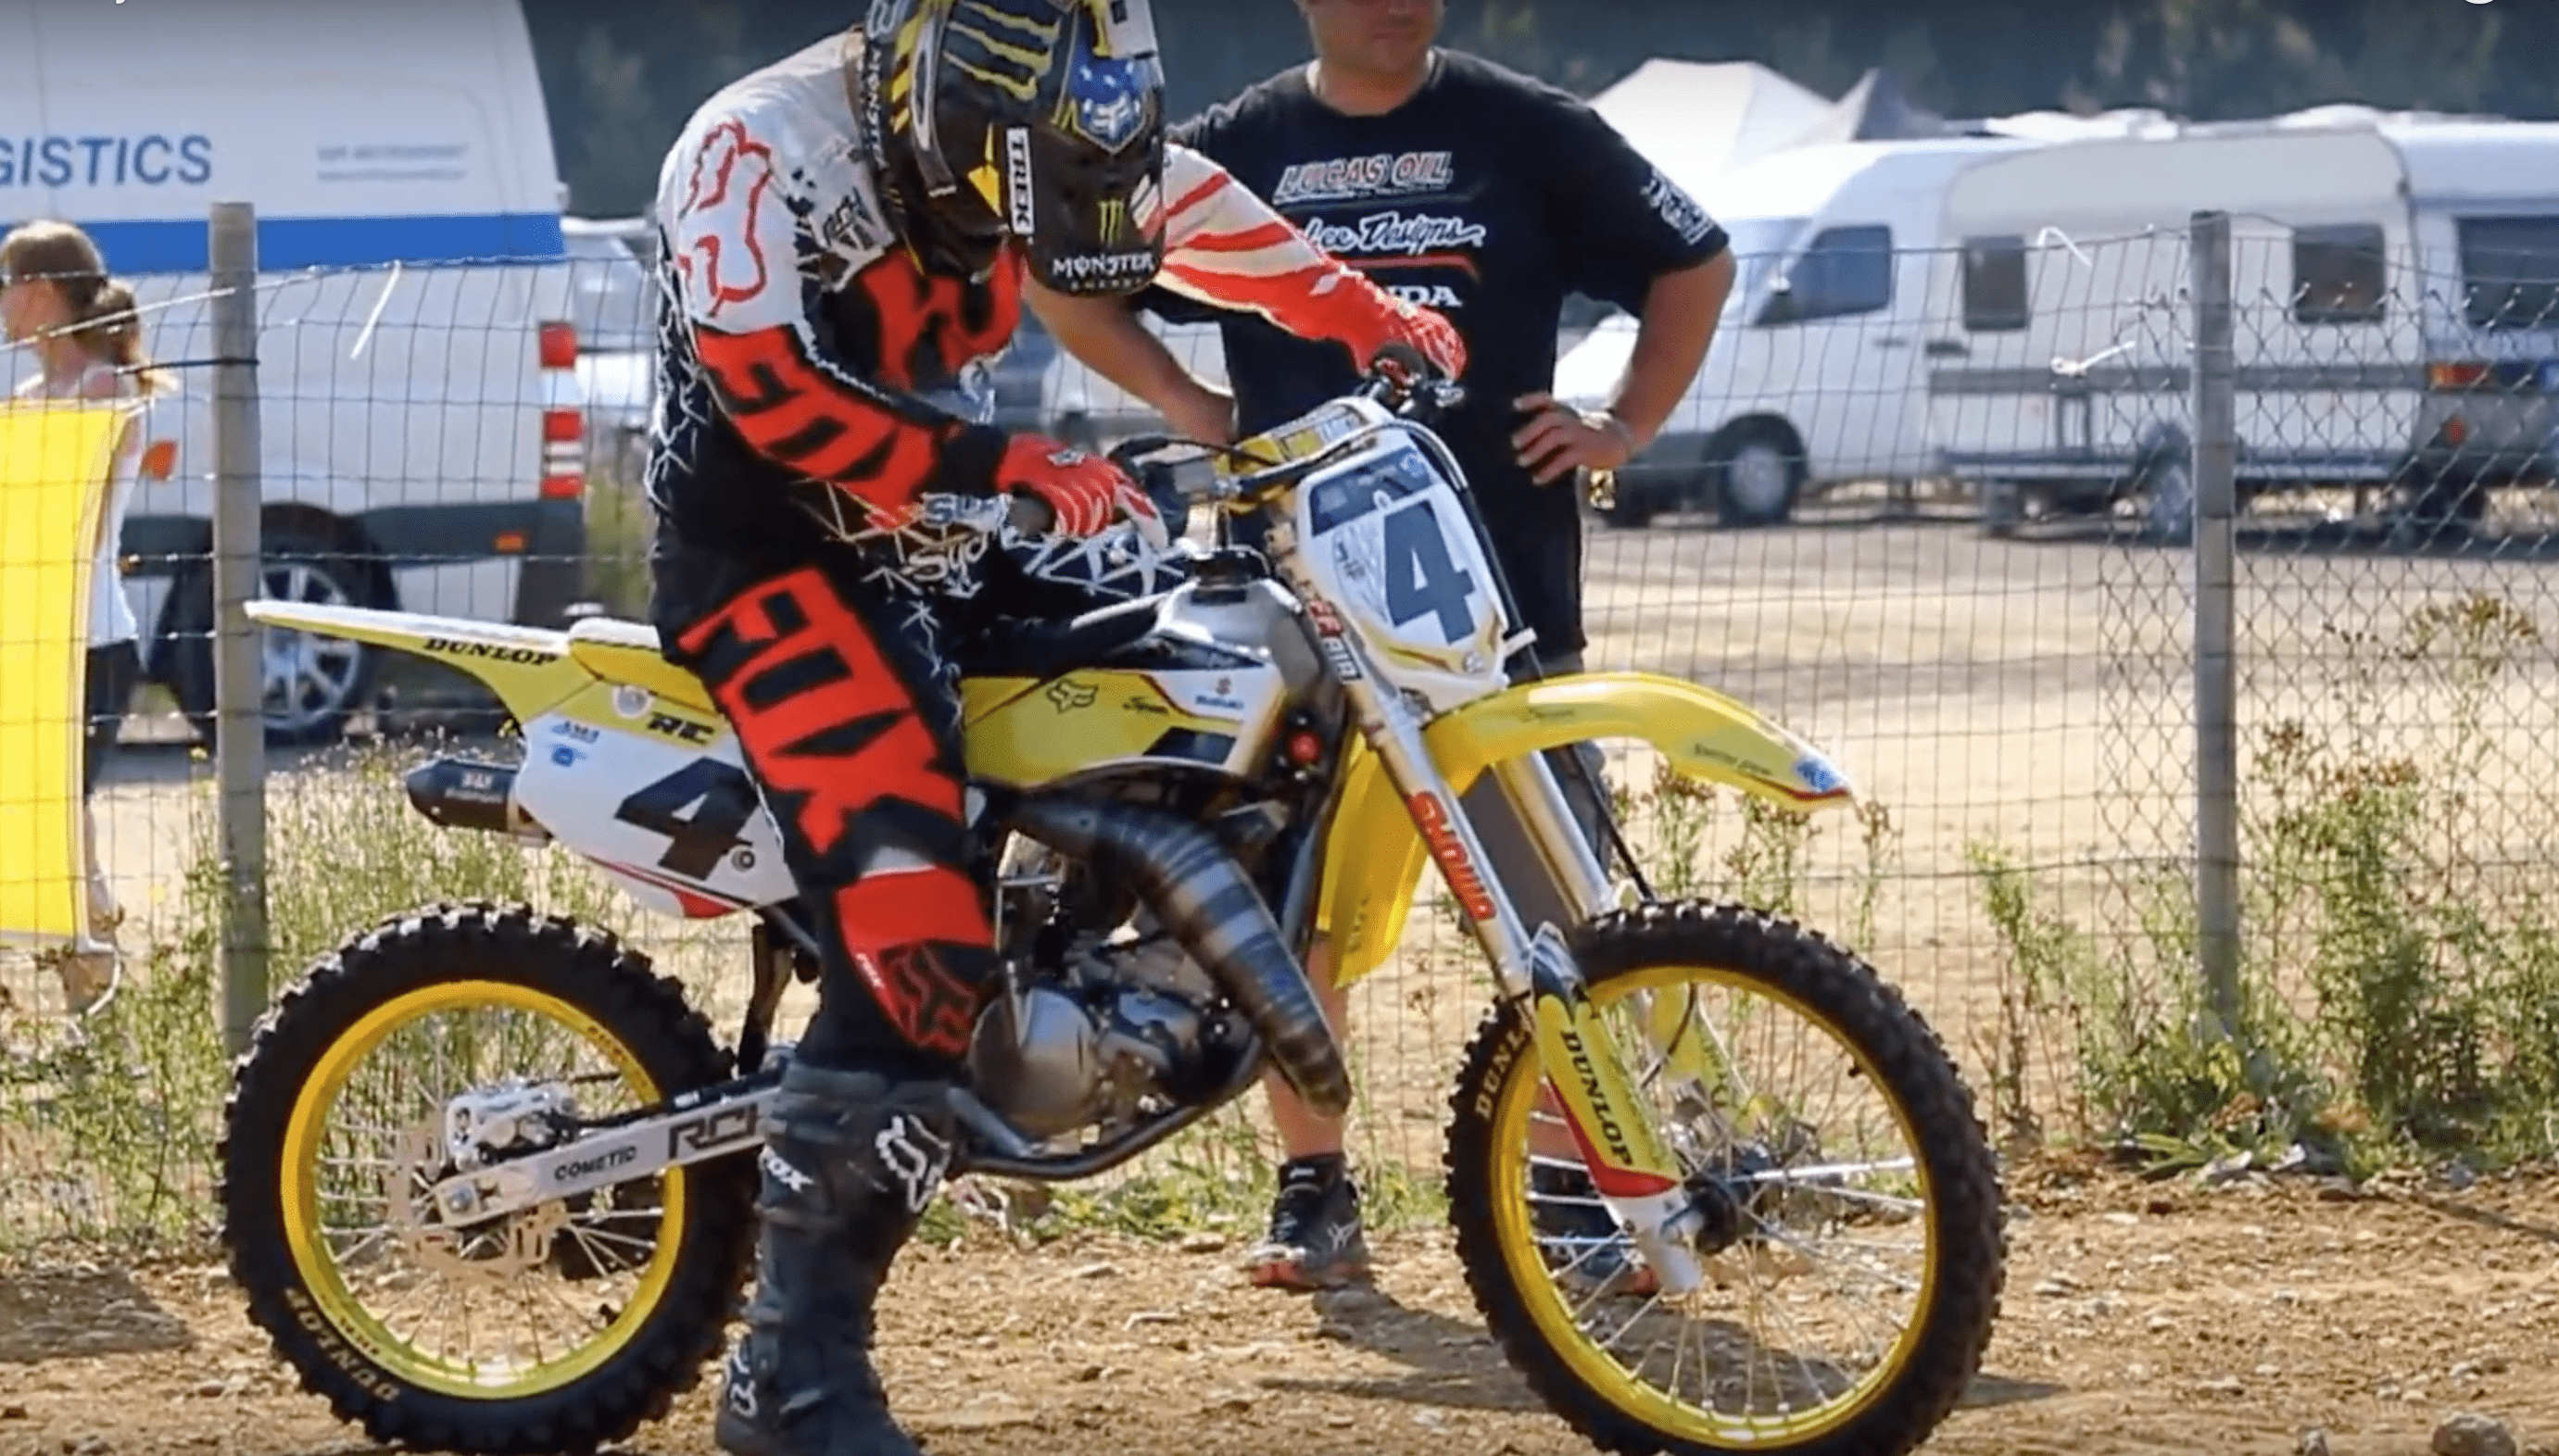 RICKY CARMICHAEL RIPPING ON THE TRICKEST RM85 YOU HAVE EVER SEEN Motocross Action Magazine